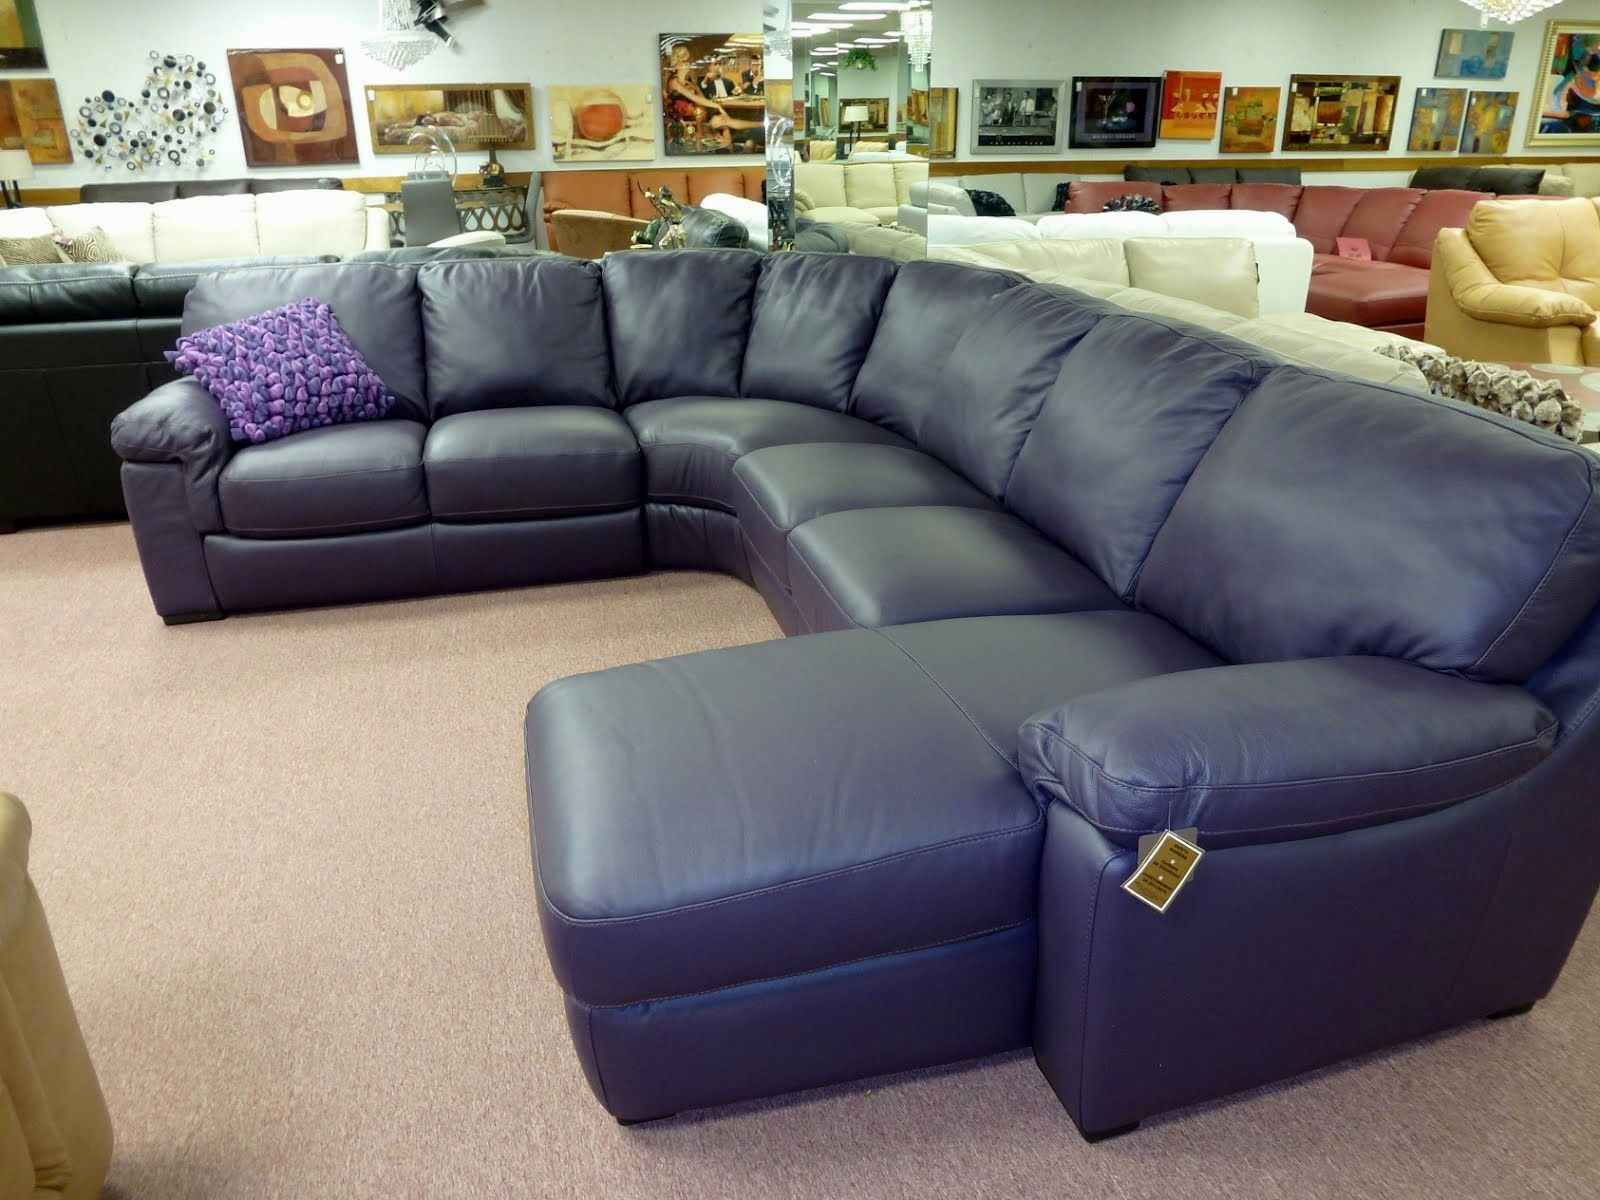 beautiful leather sectional sofas online-Wonderful Leather Sectional sofas Architecture